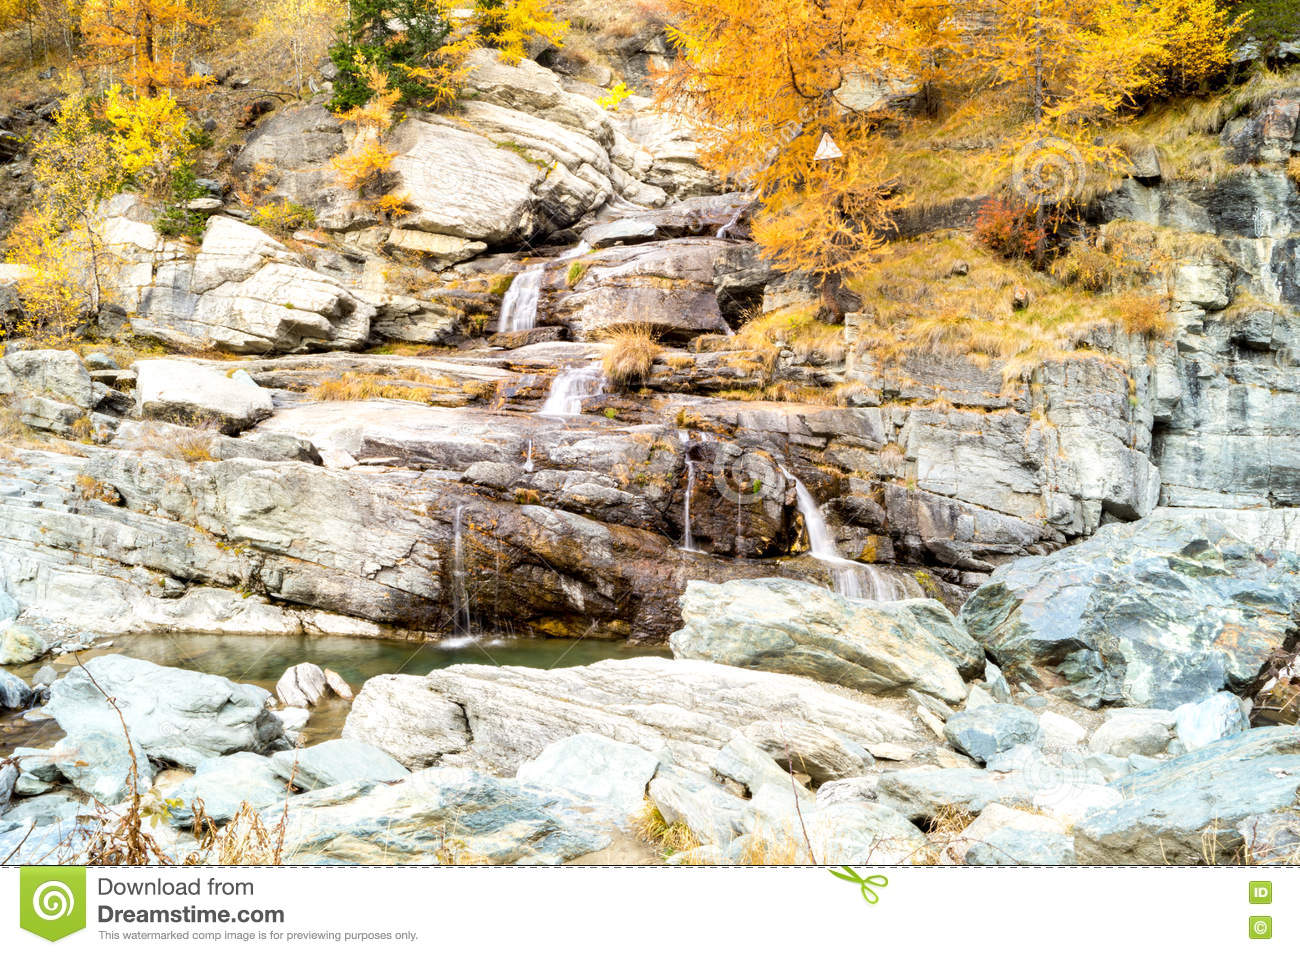 Water cascading over rocks, waterfall and autumn colors in the mountains, yellow and red trees